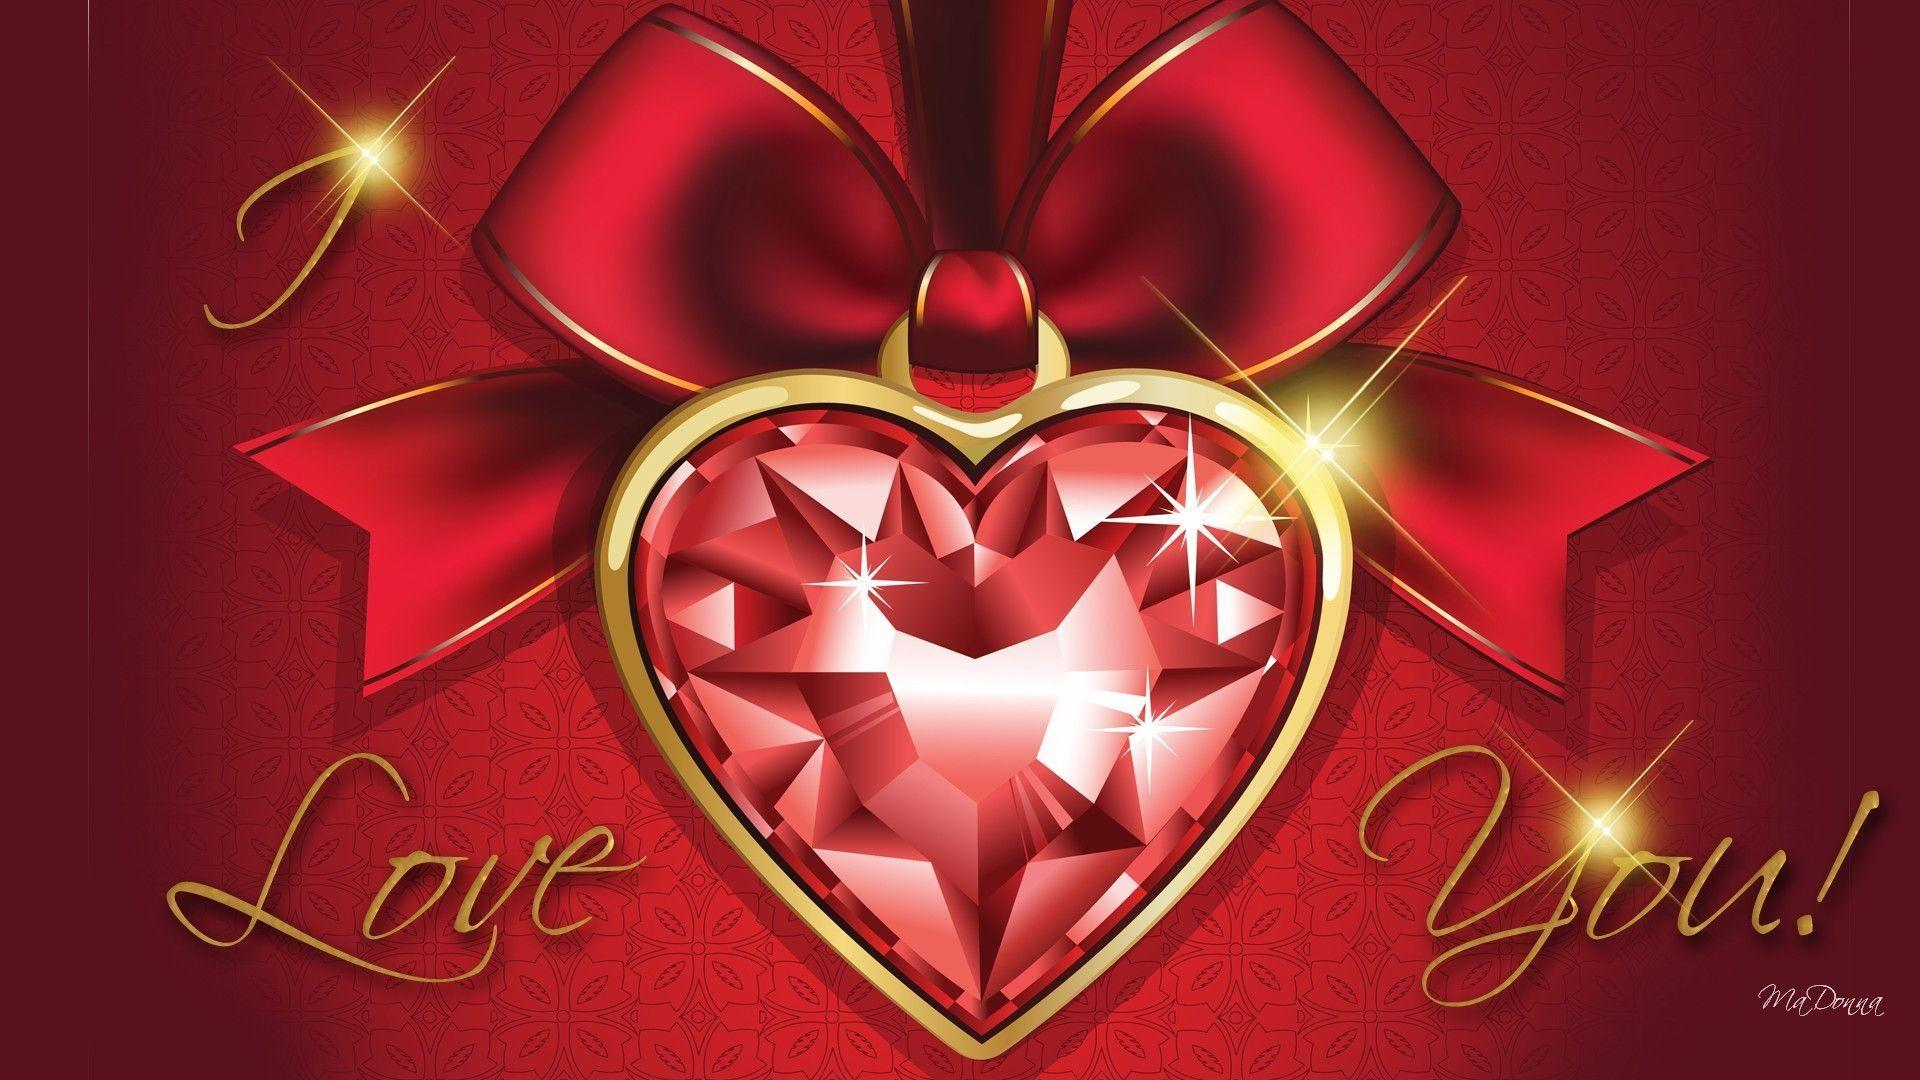 Valentine Hearts Wallpapers - Wallpaper Cave